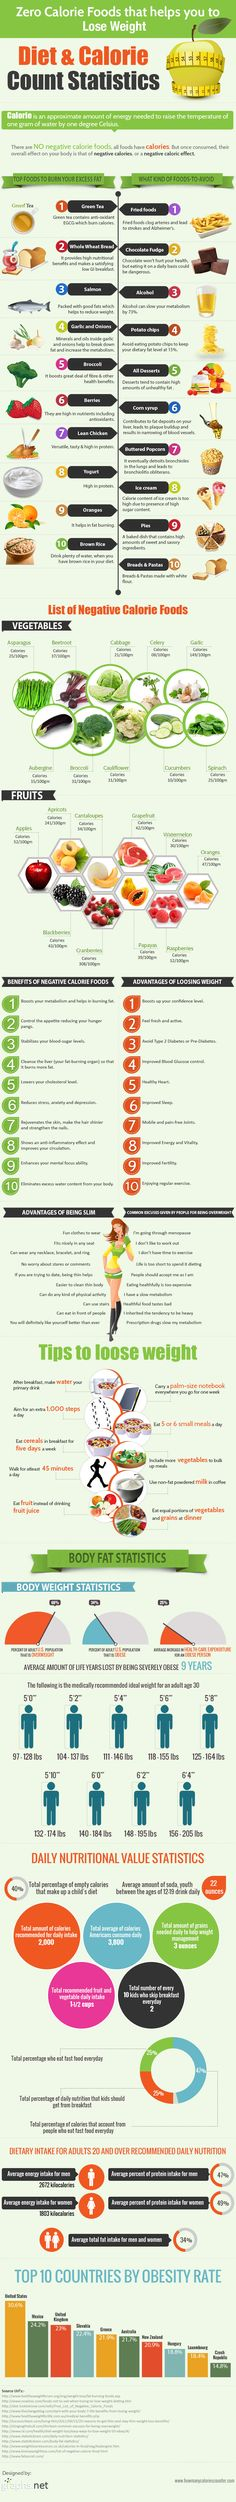 Lose Weight With These #ZeroCalorie Foods | #Infographic